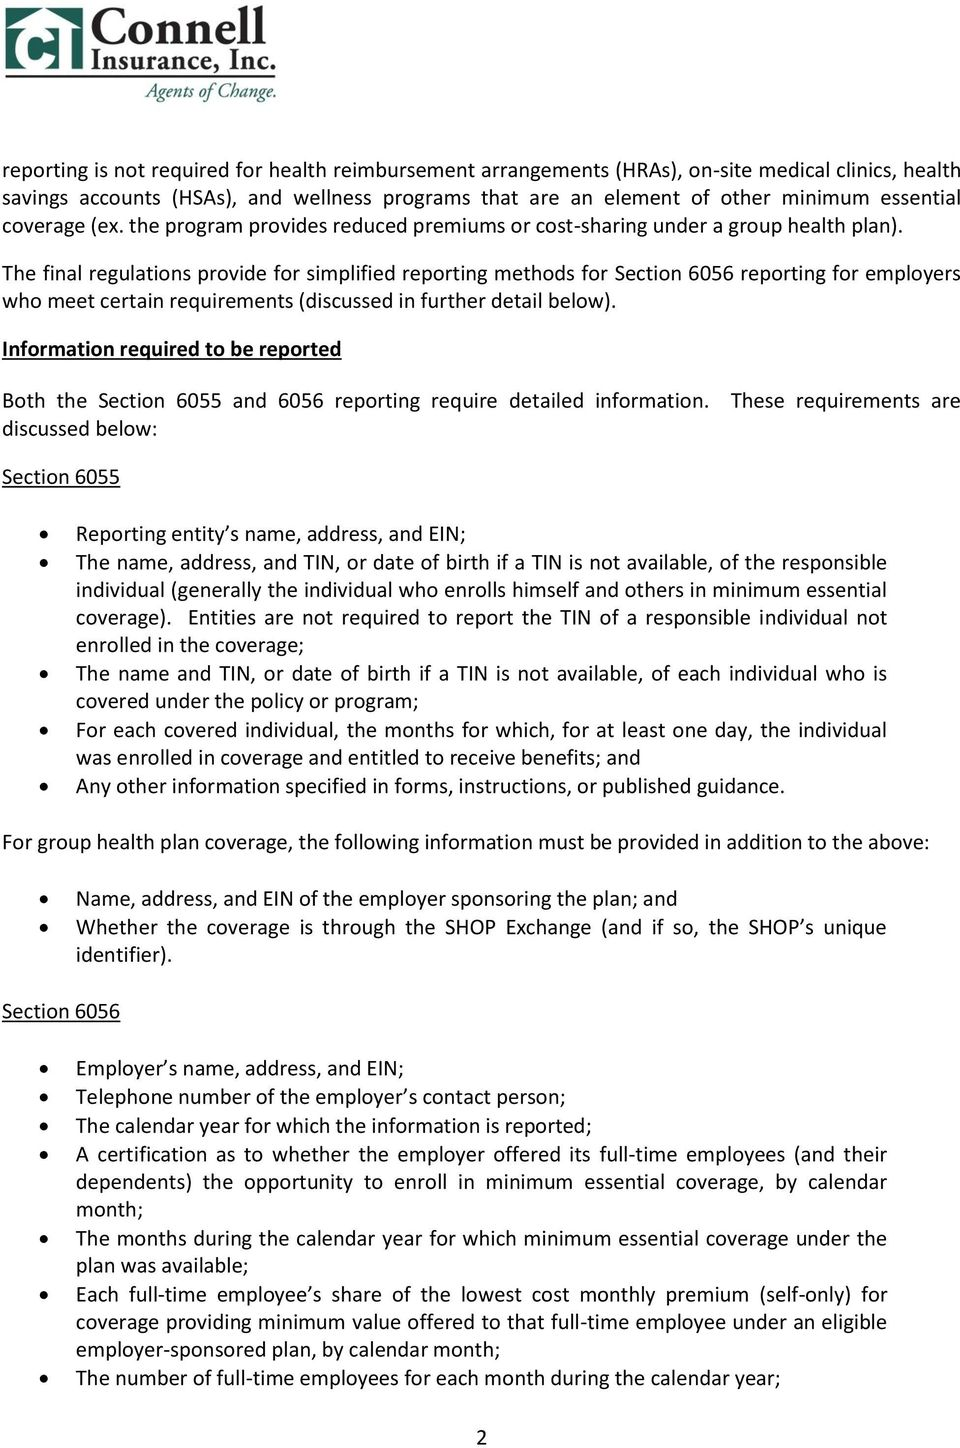 The final regulations provide for simplified reporting methods for Section 6056 reporting for employers who meet certain requirements (discussed in further detail below).